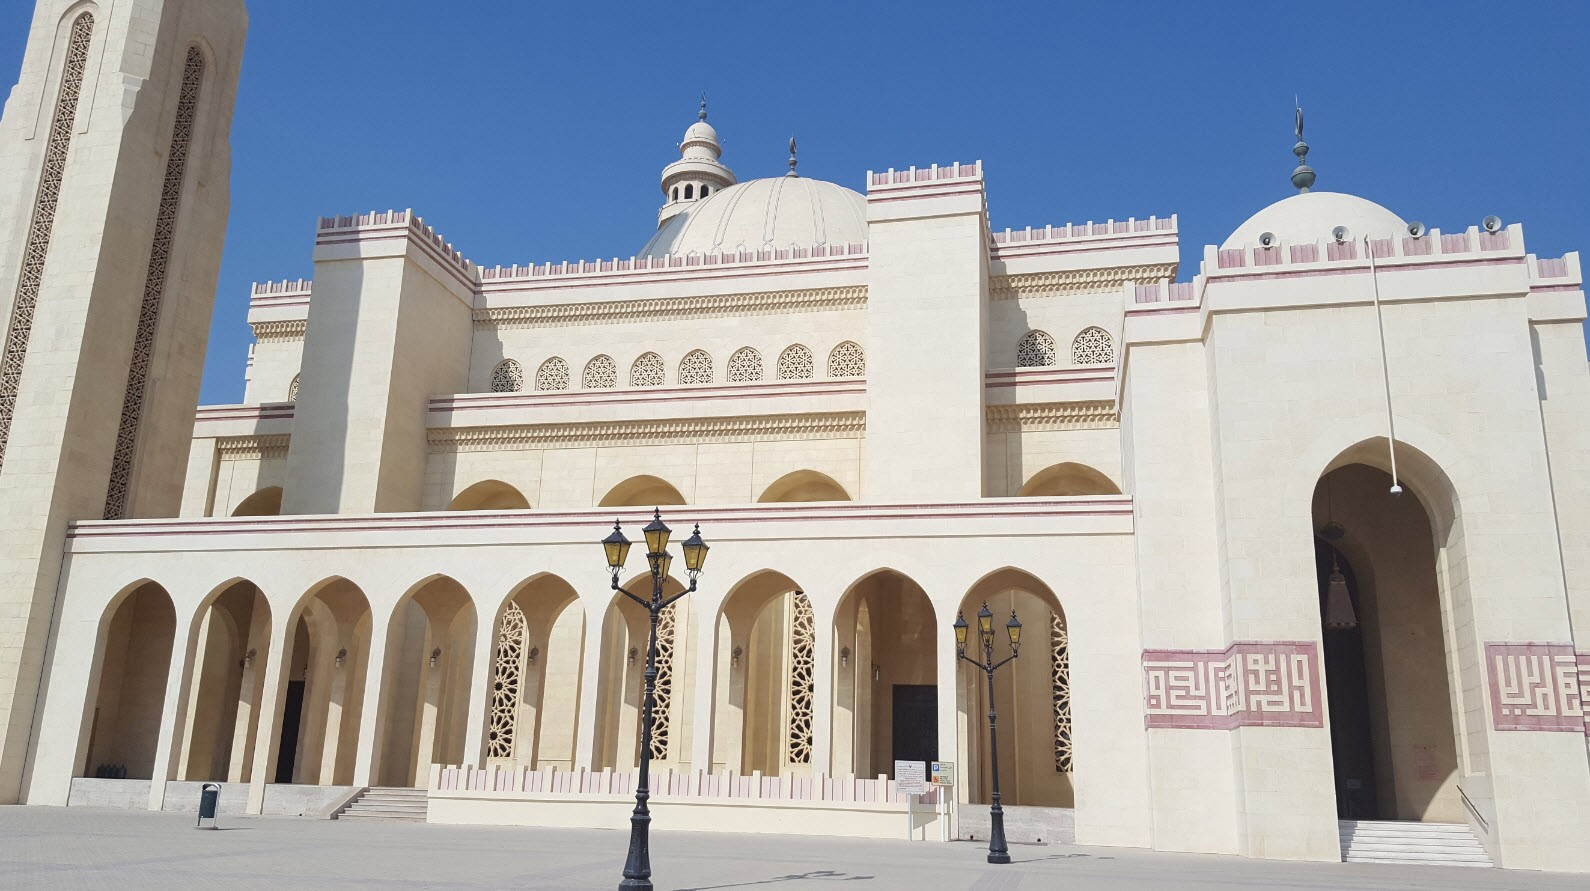 Mosque Bahrain 9